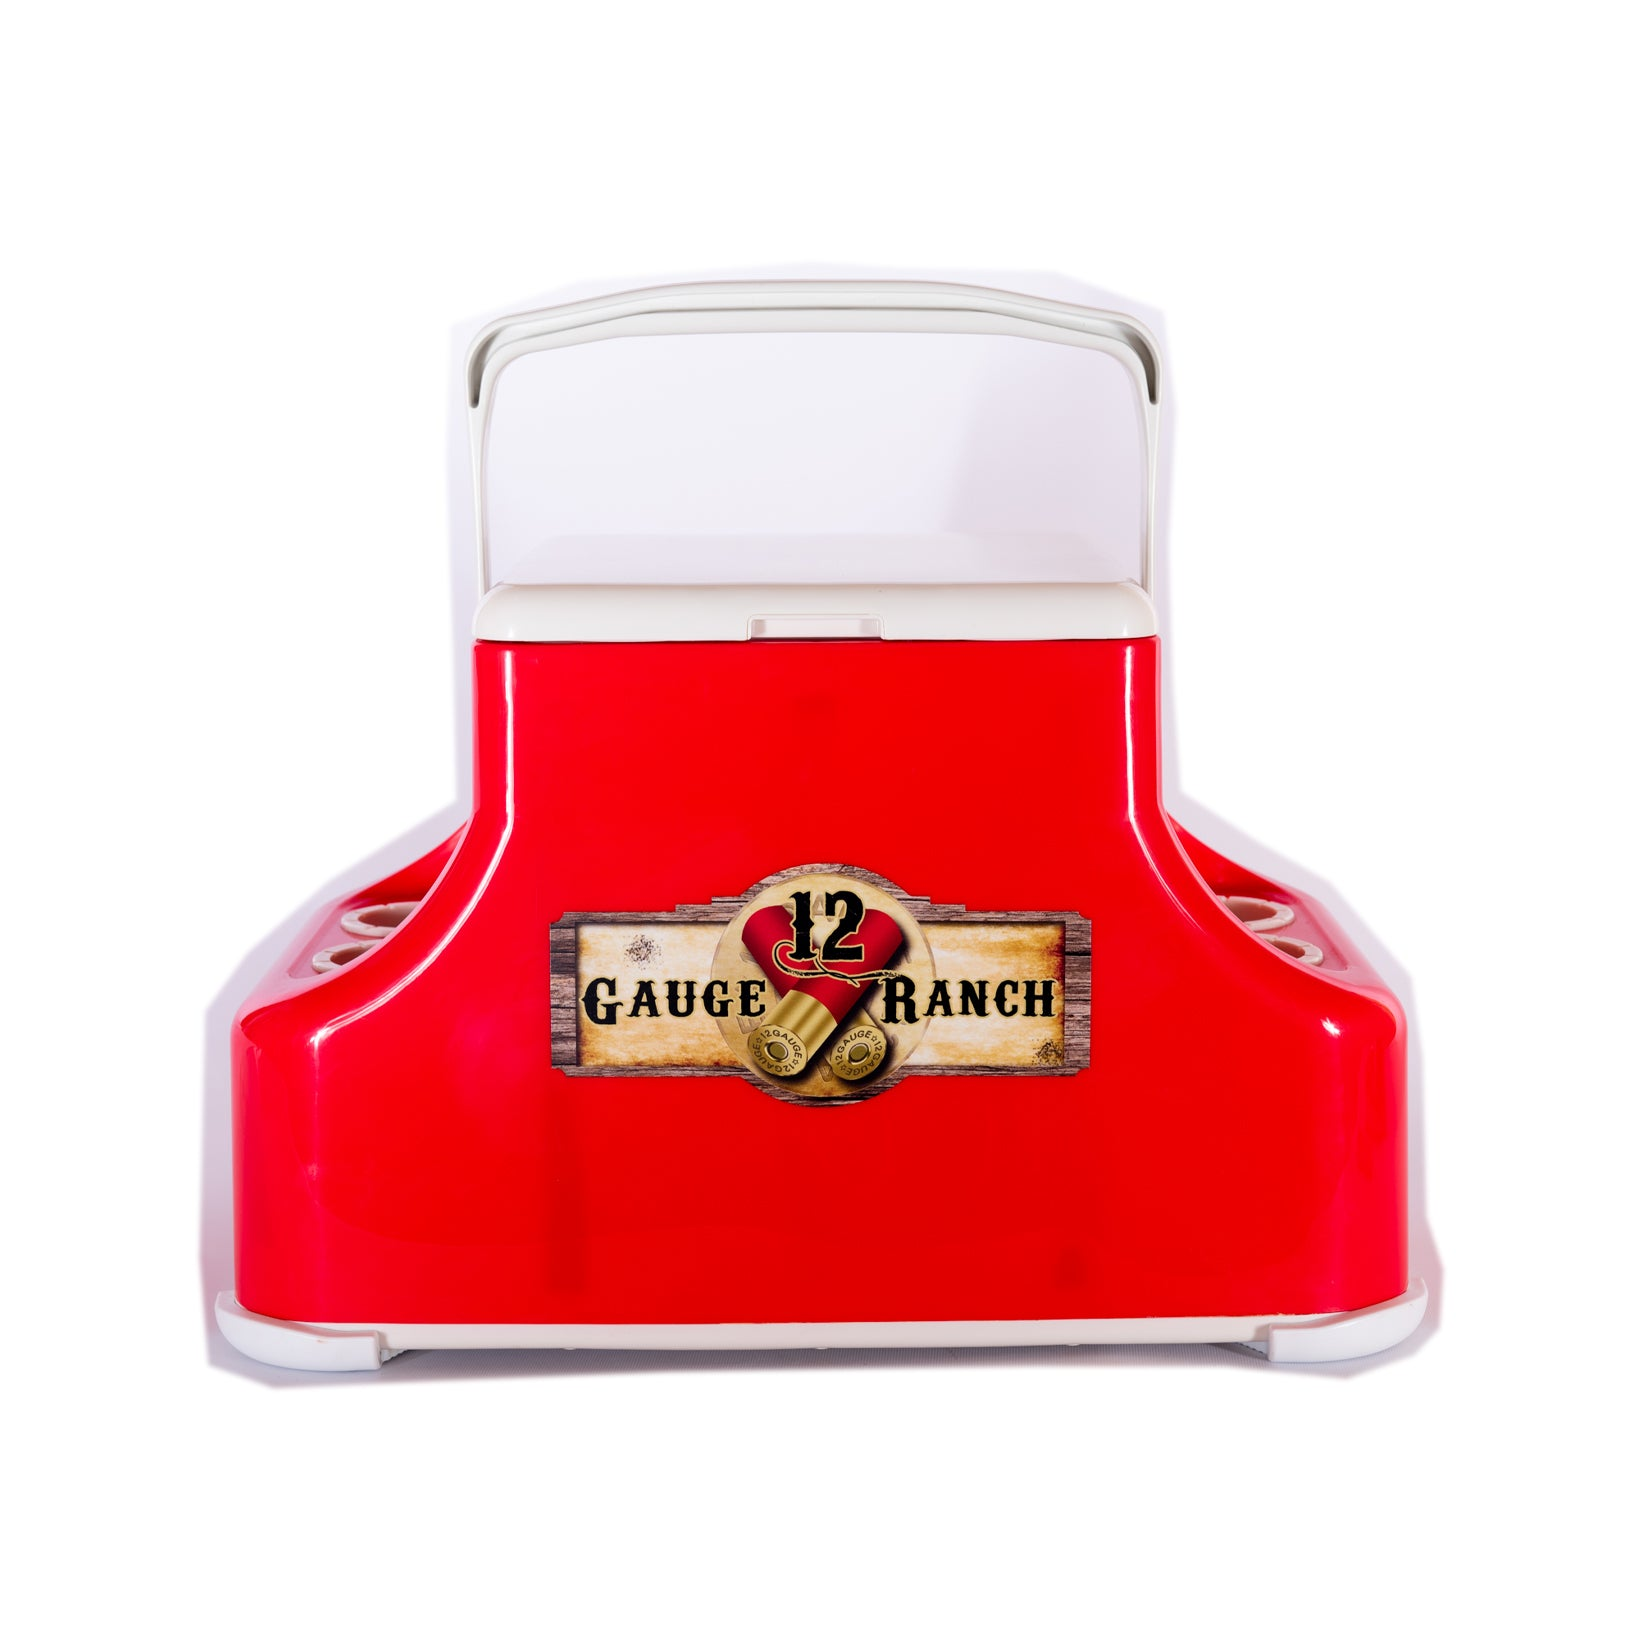 12 Gauge Ranch Red Arcticor Cooler (RDCLRTR), Accessories, 12 Gauge Ranch, 12 Gauge Ranch Ranch  12 Gauge Ranch